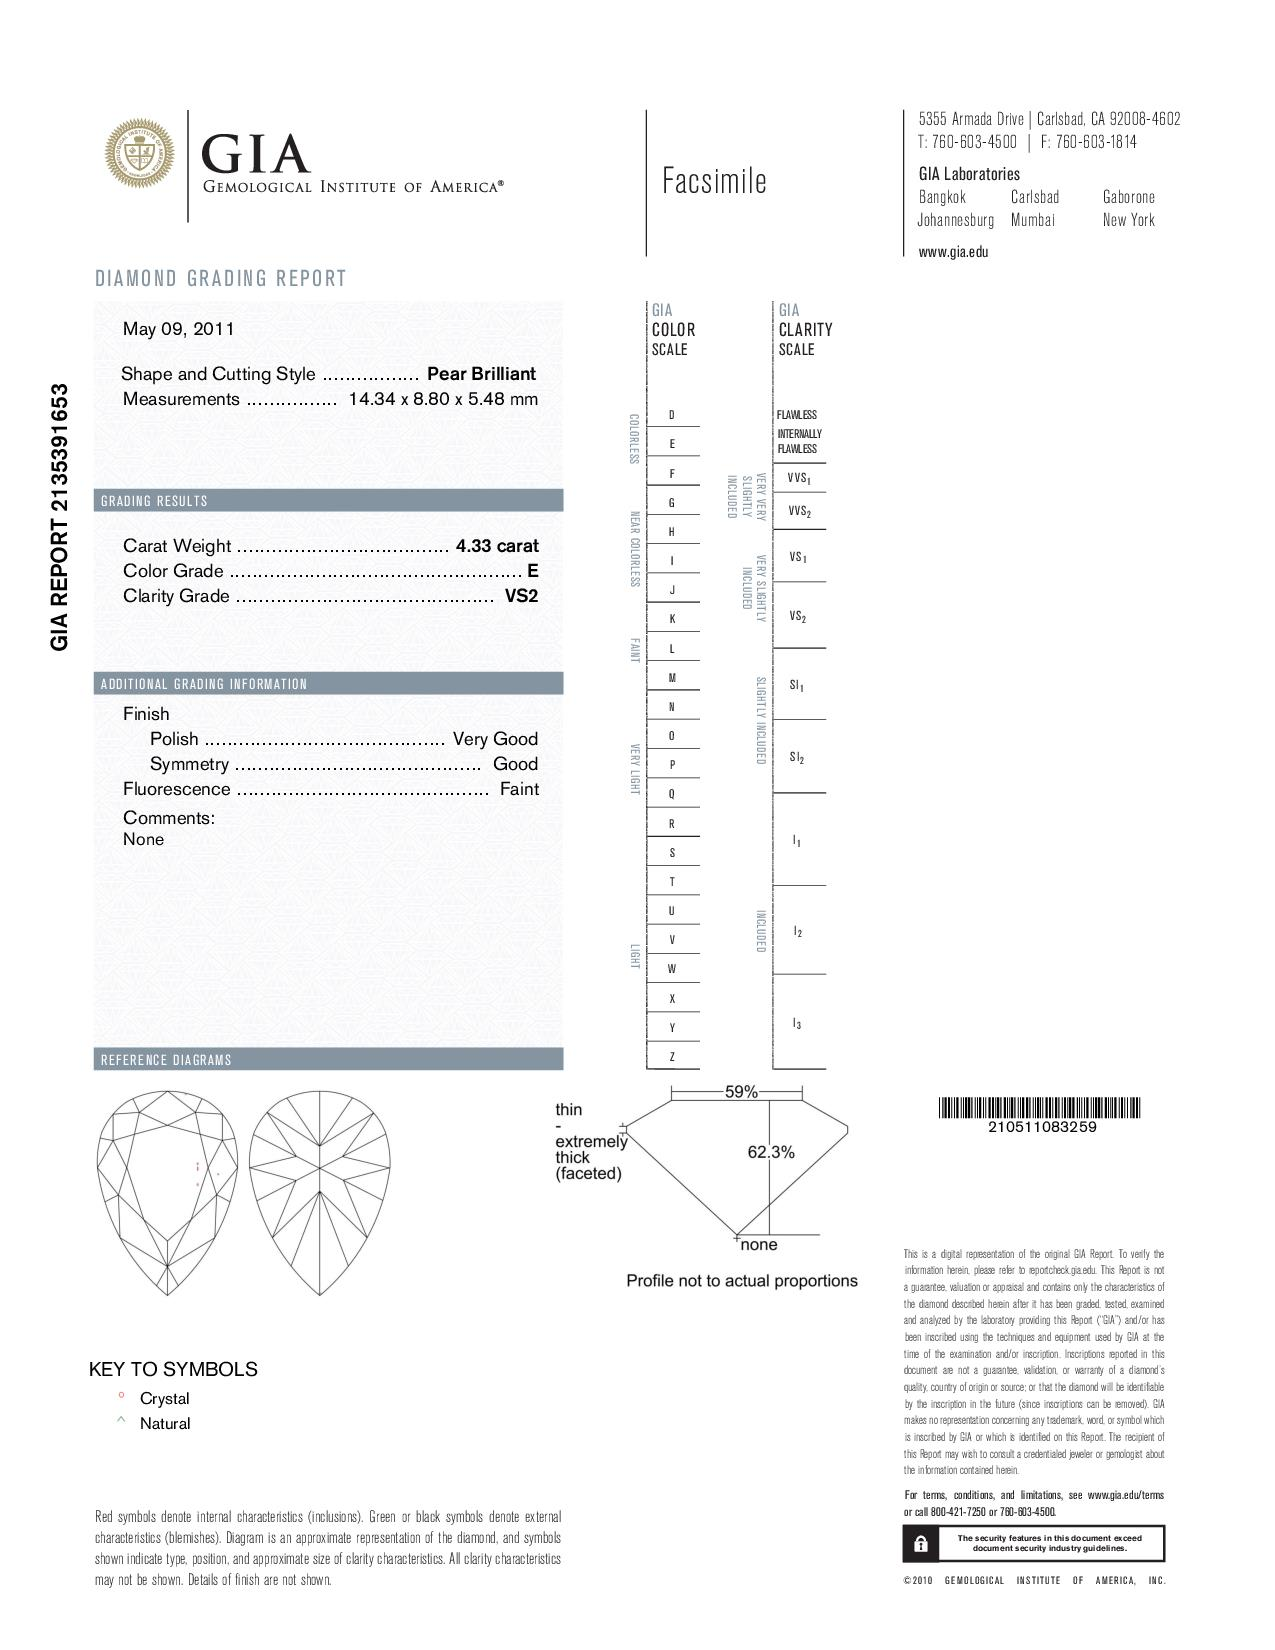 This is a 4.33 carat pear shape, E color, VS2 clarity natural diamond accompanied by a GIA grading report.